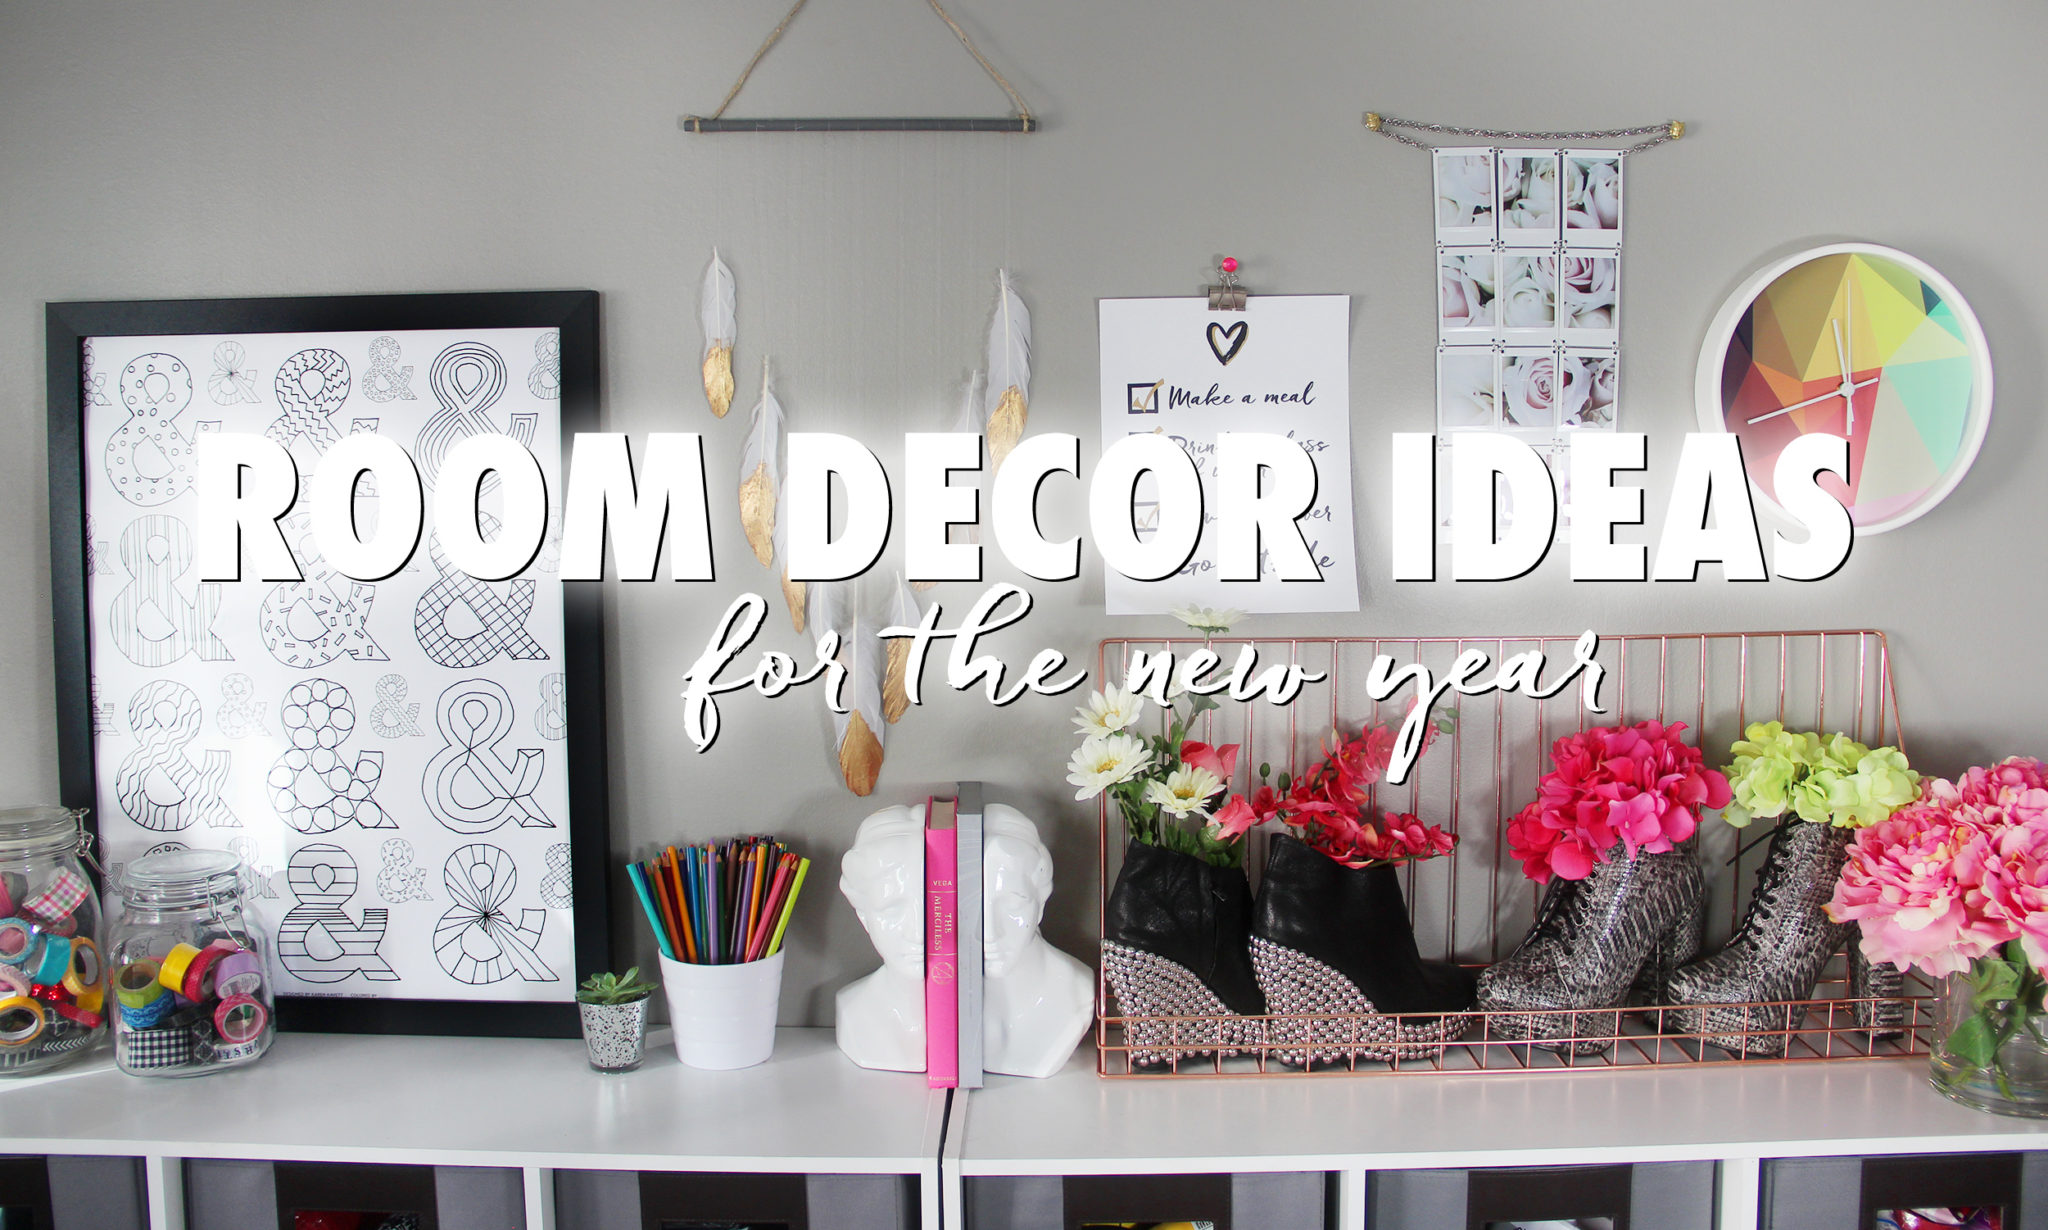 3 Room Decor Ideas For 2016 + Free Printable Motivational Poster